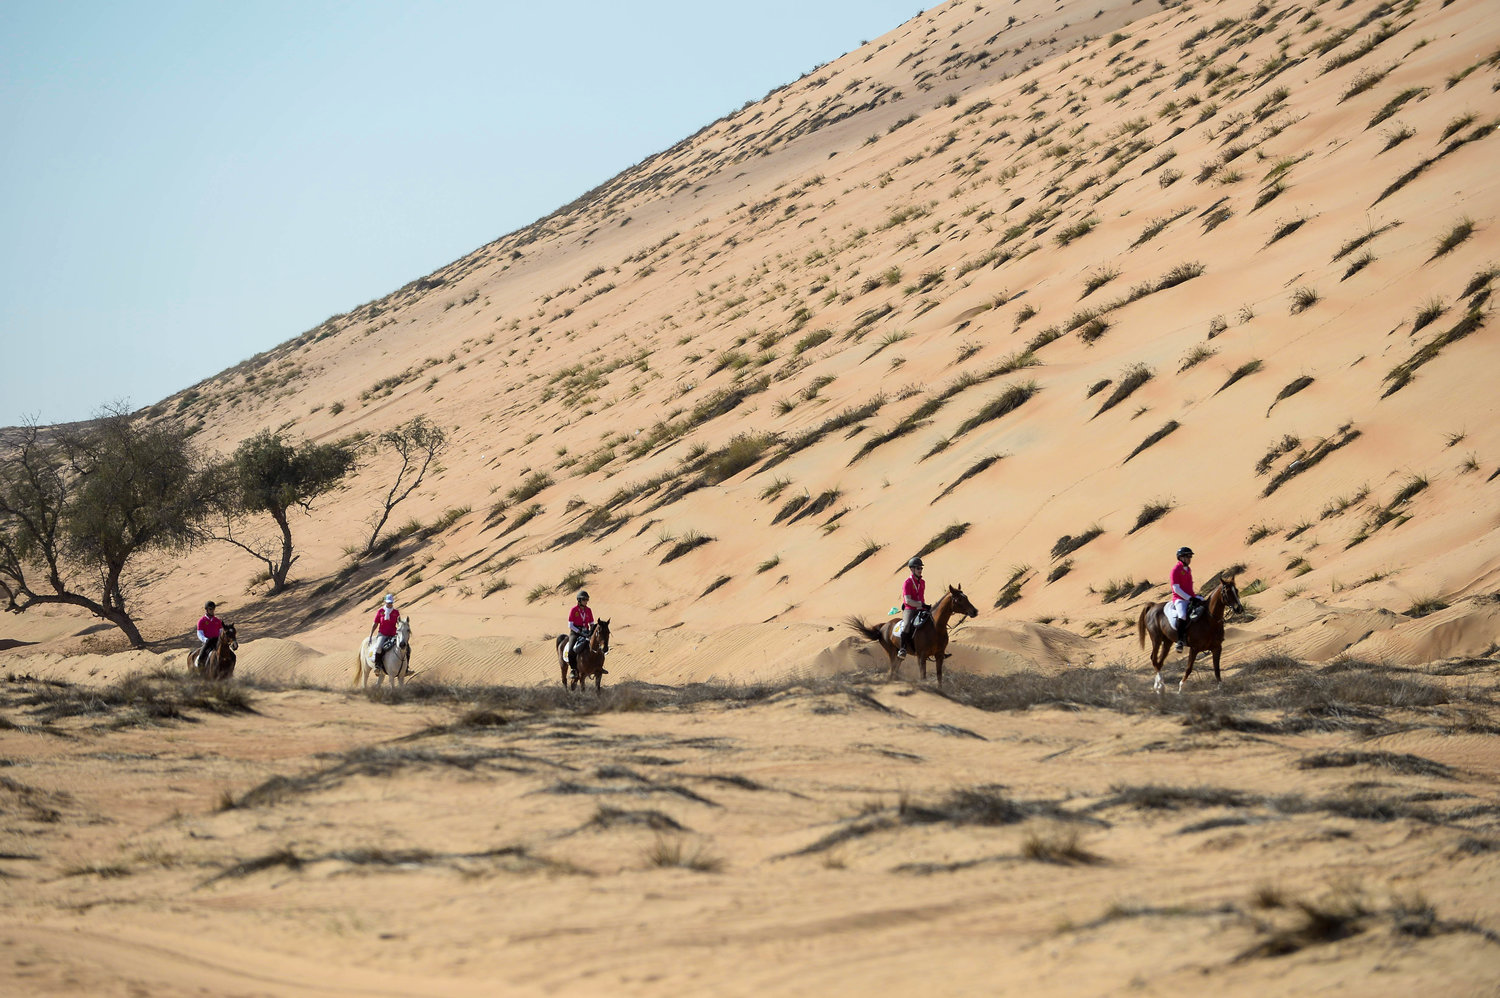 Endurance World Gallops of Morocco. Big dunes.